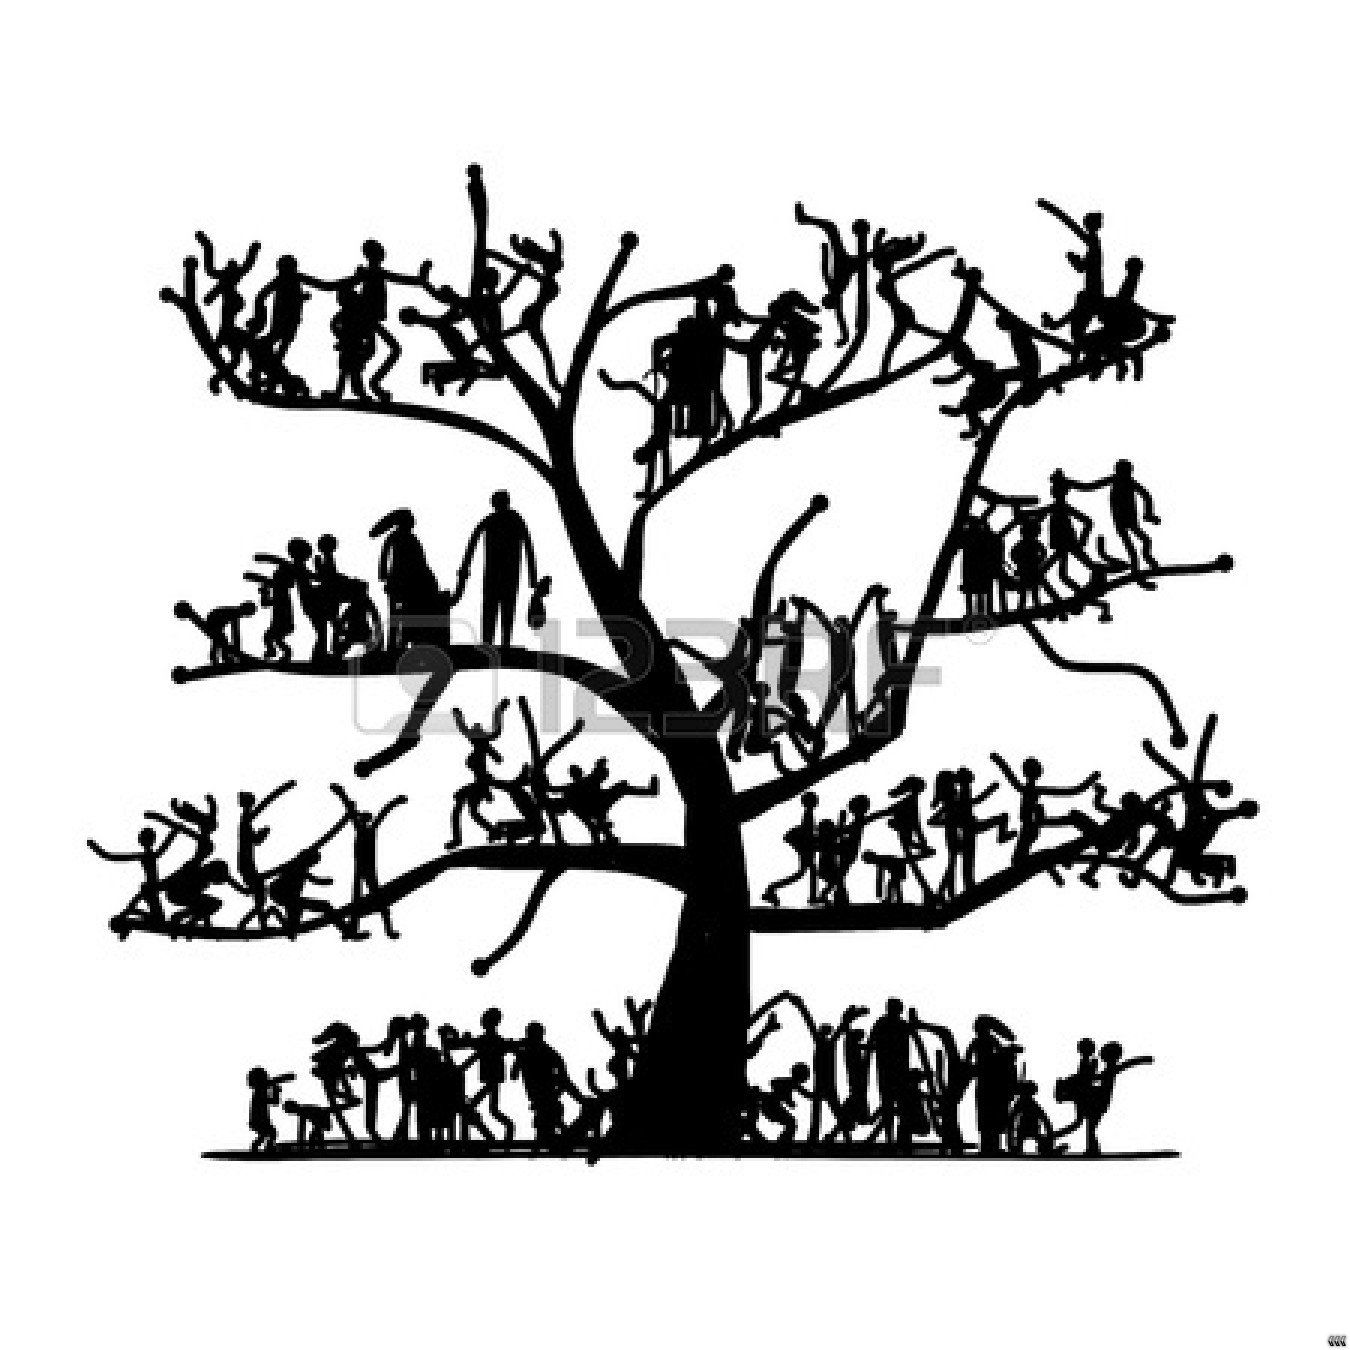 image result for free family tree clipart images family rh pinterest com free family reunion picnic clipart free family reunion picnic clipart